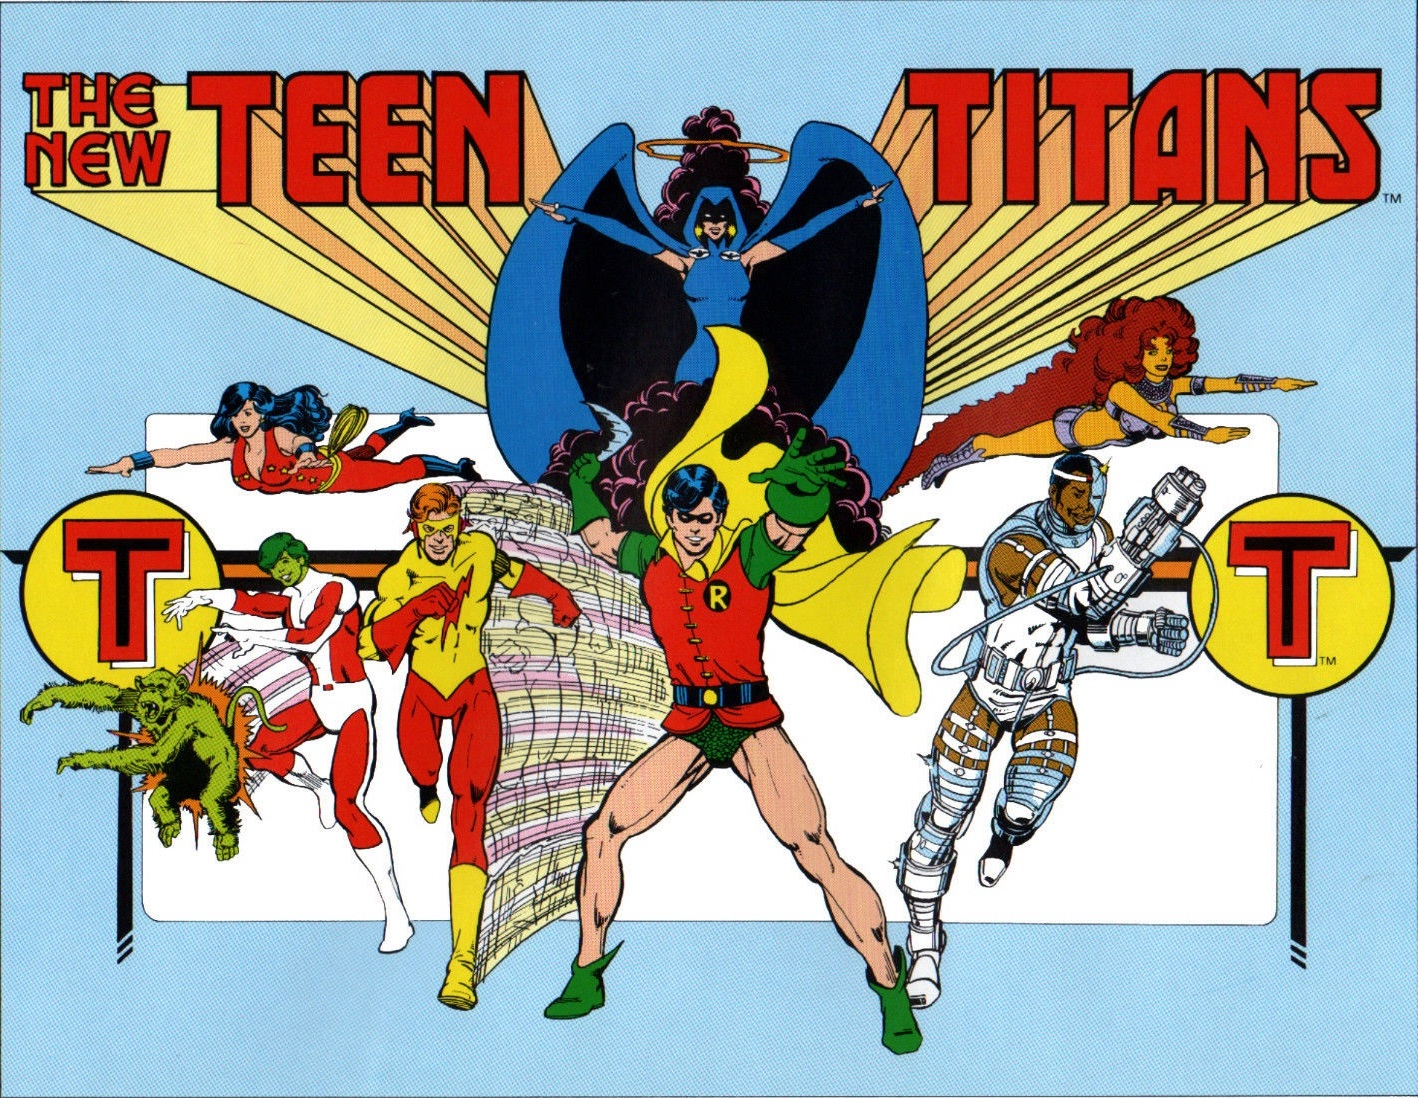 New Teen Titans 2018